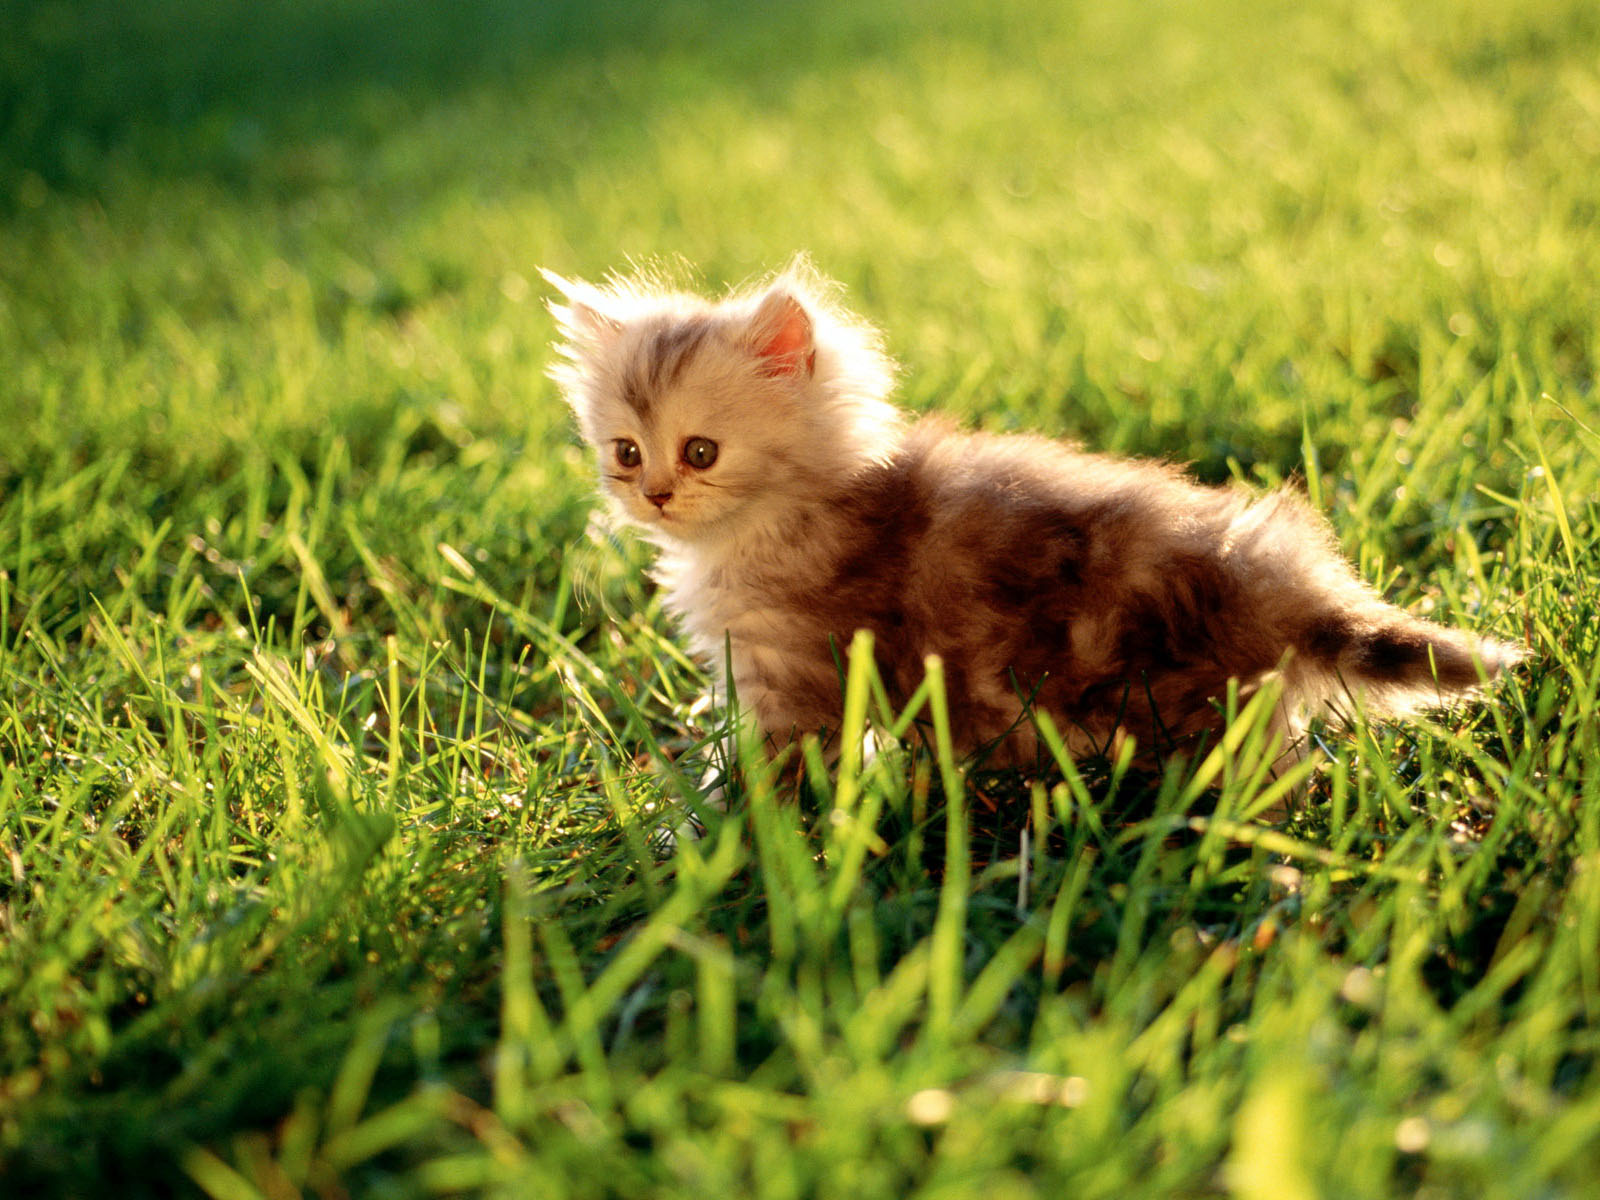 Hd animal wallpapers - Kitten wallpaper hd ...